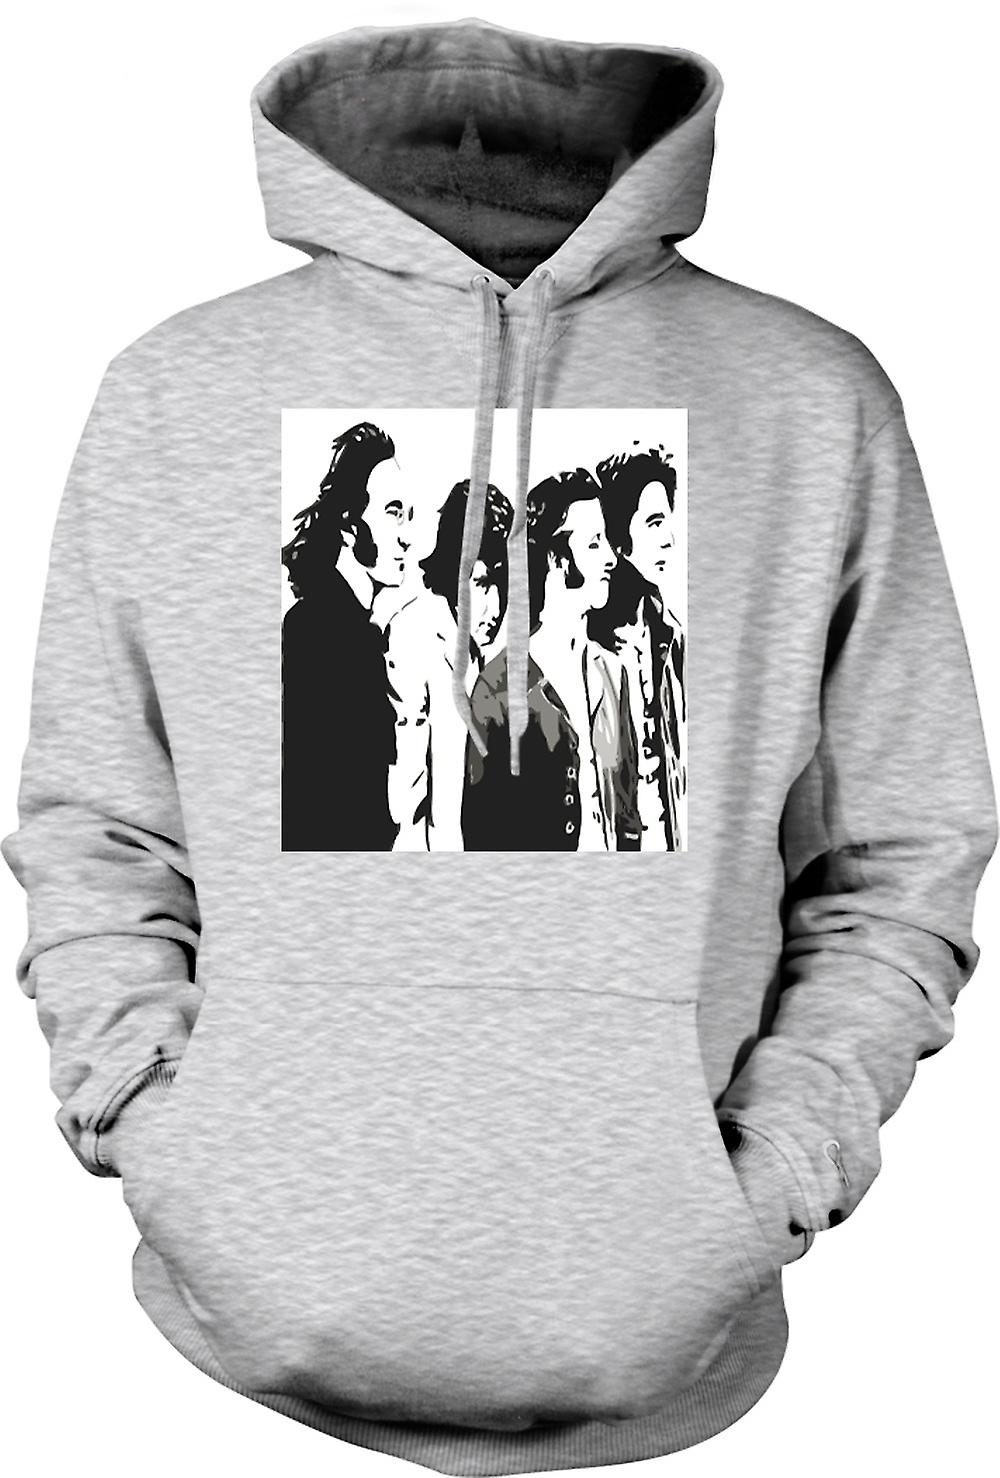 Herren Hoodie - Die Beatles - Band - Pop-Art